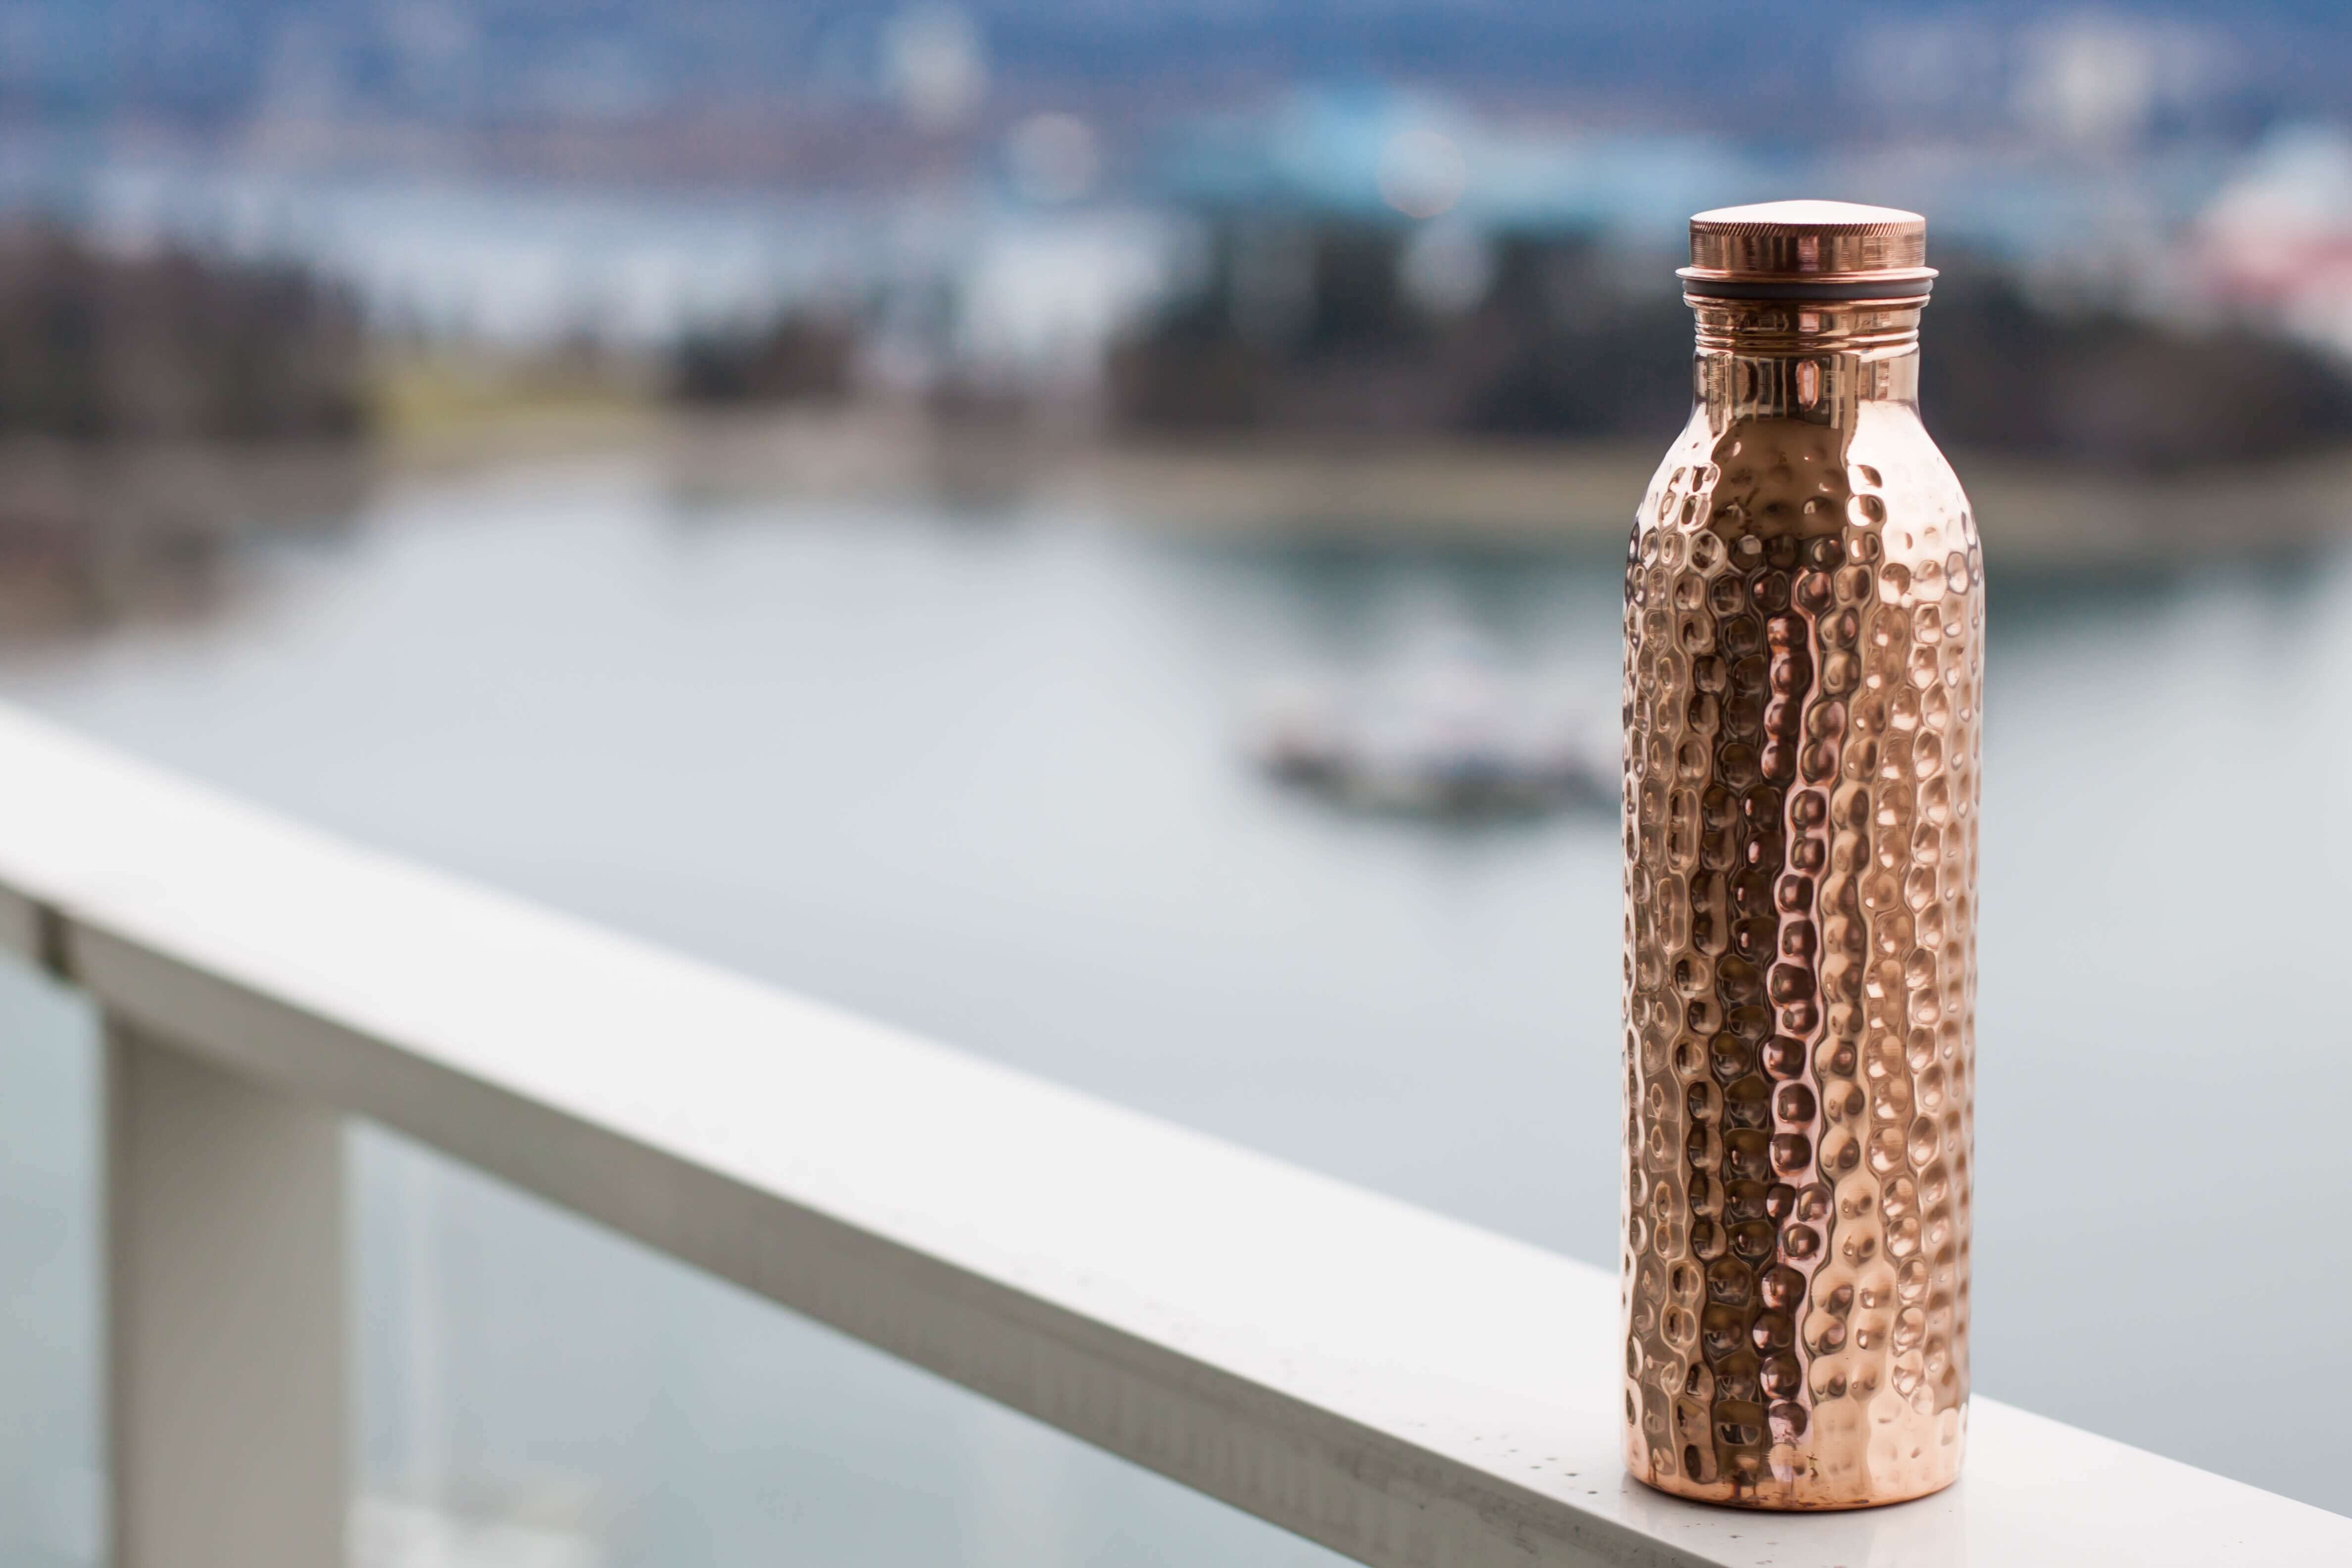 Top 5 Health Benefits of Drinking Water from a Copper Vessel